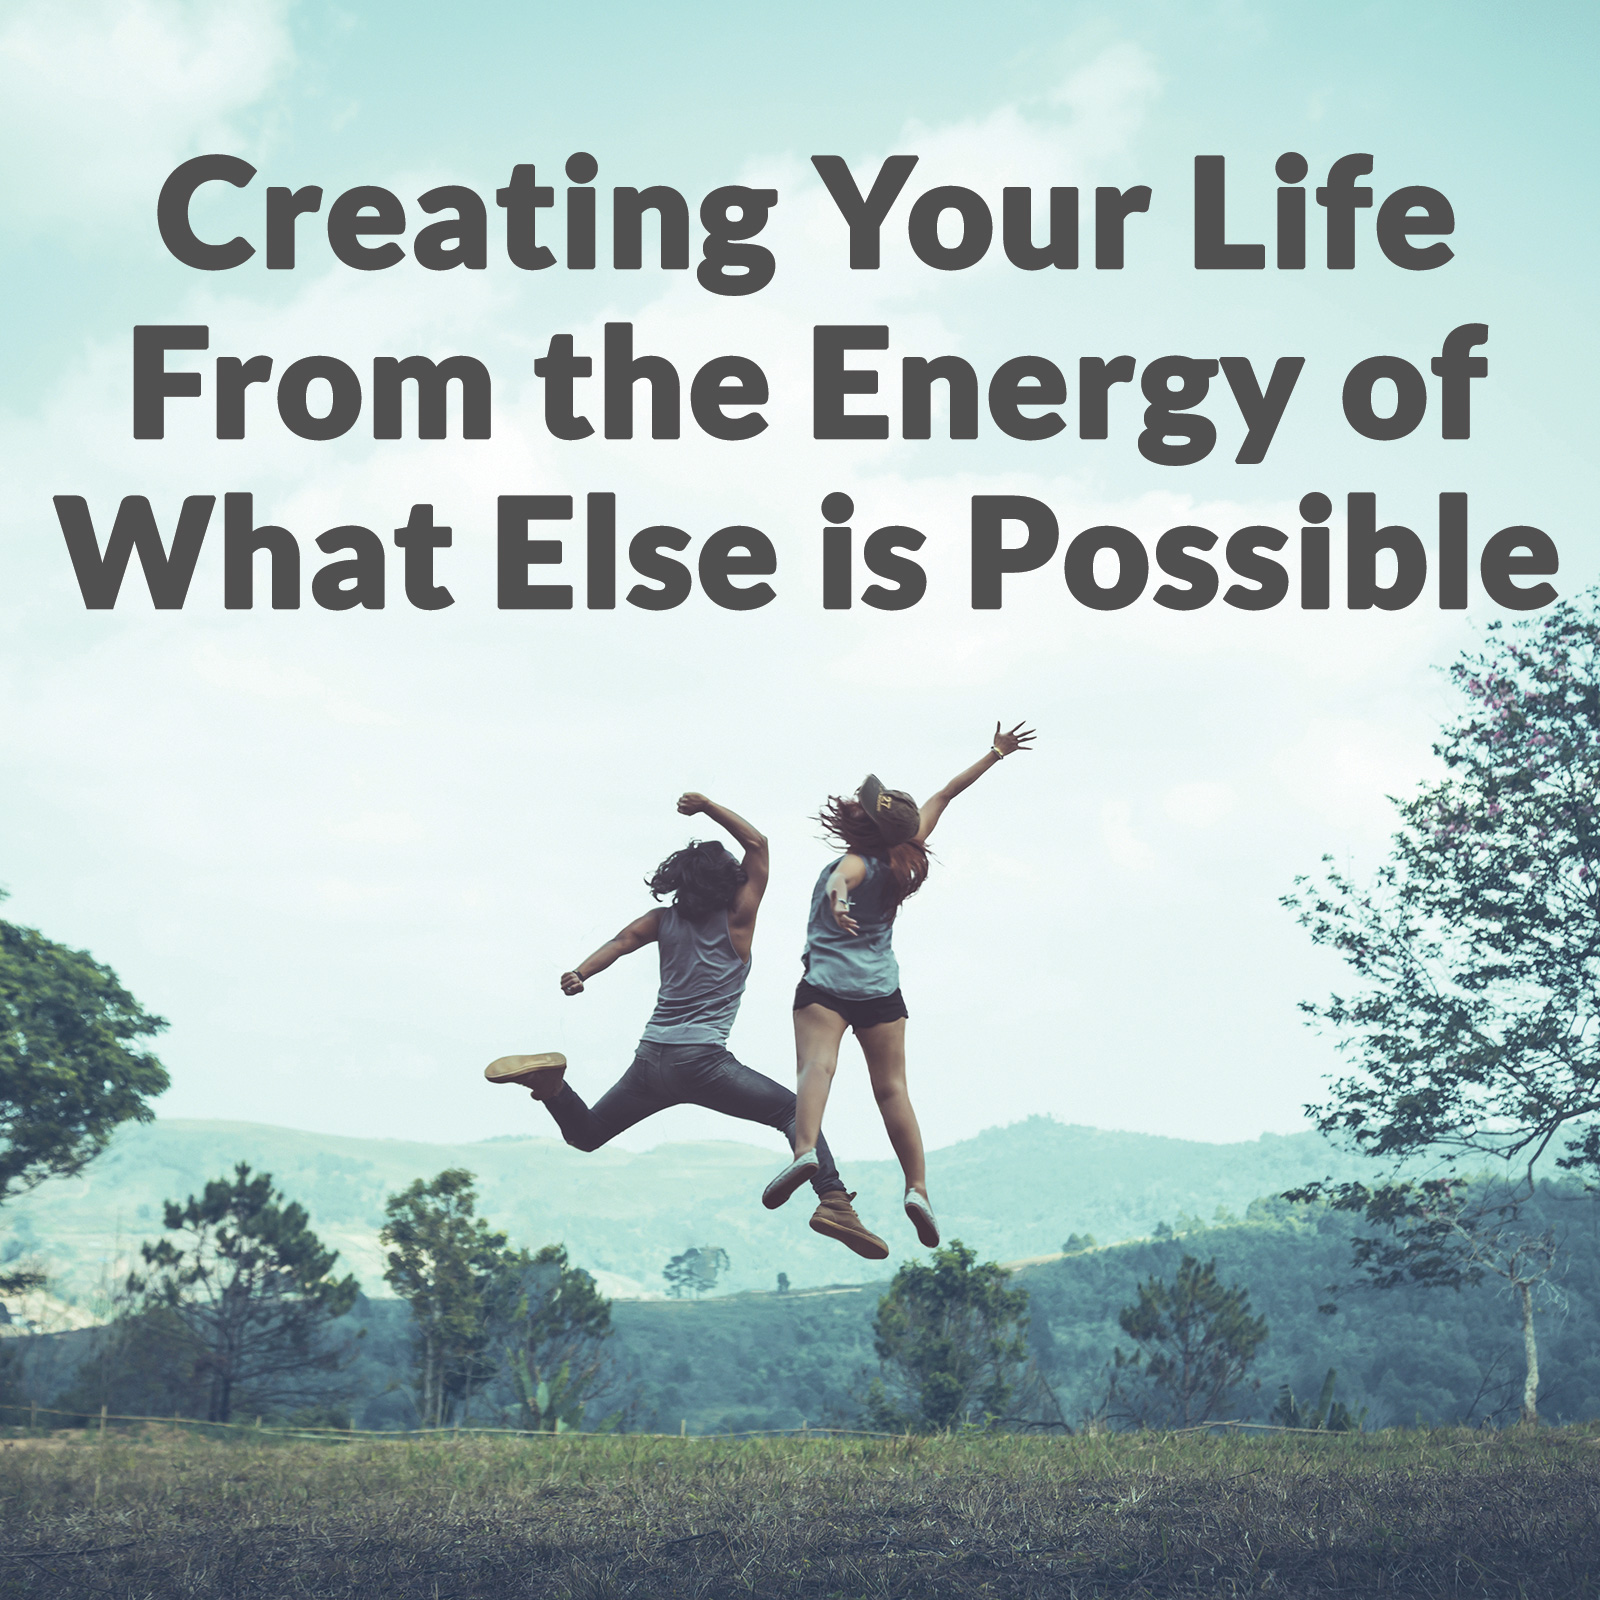 Creating Your Life From the Energy of What Else is Possible